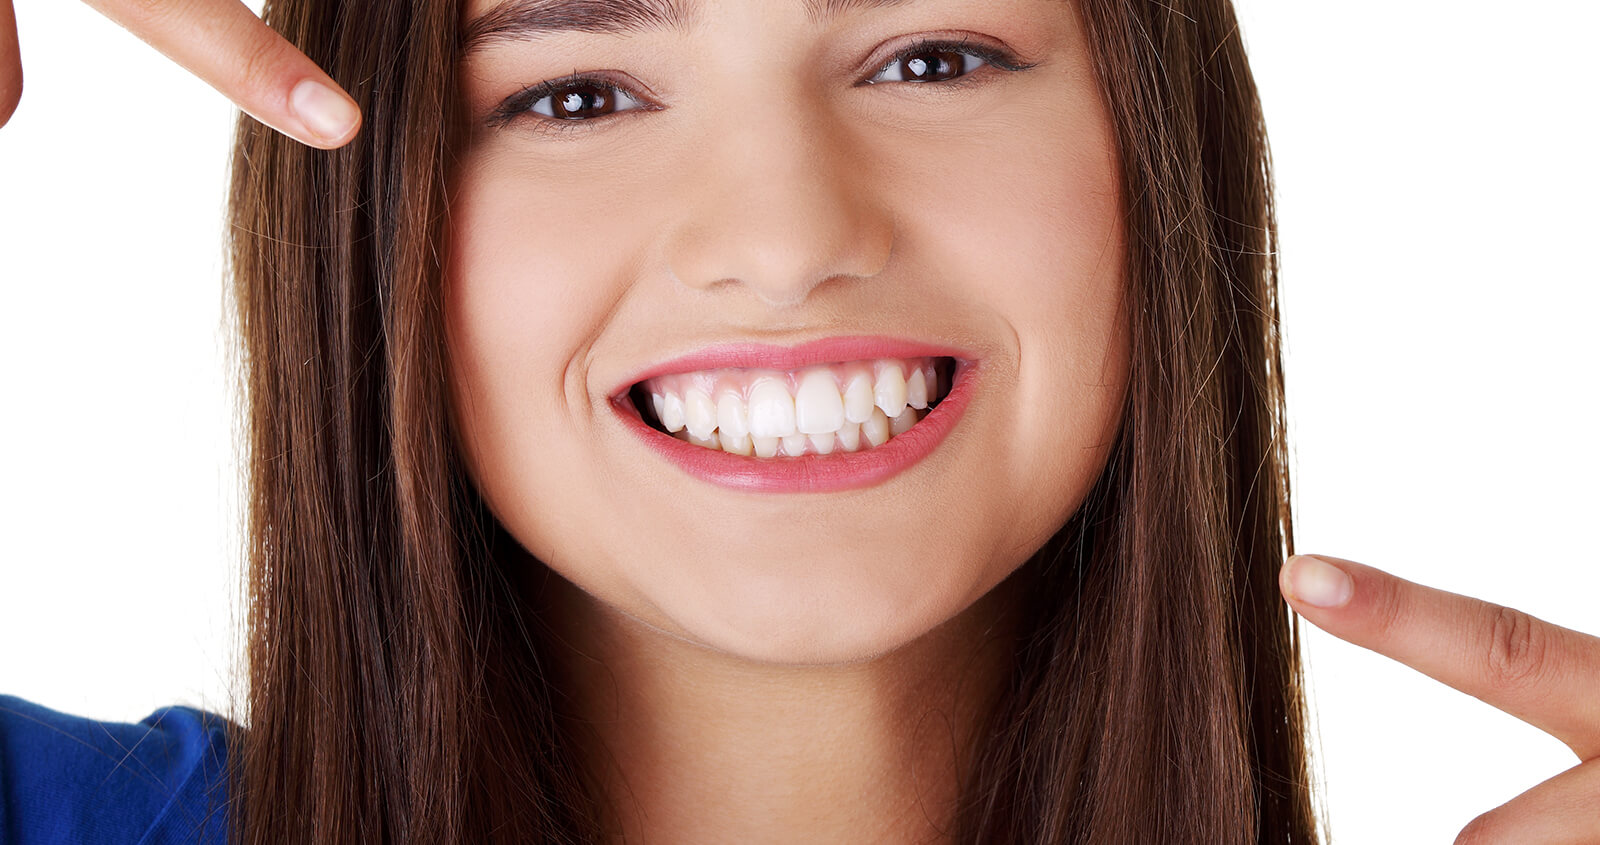 What is ozone therapy? And how can it be used for the health of my teeth in Overland Park, KS?